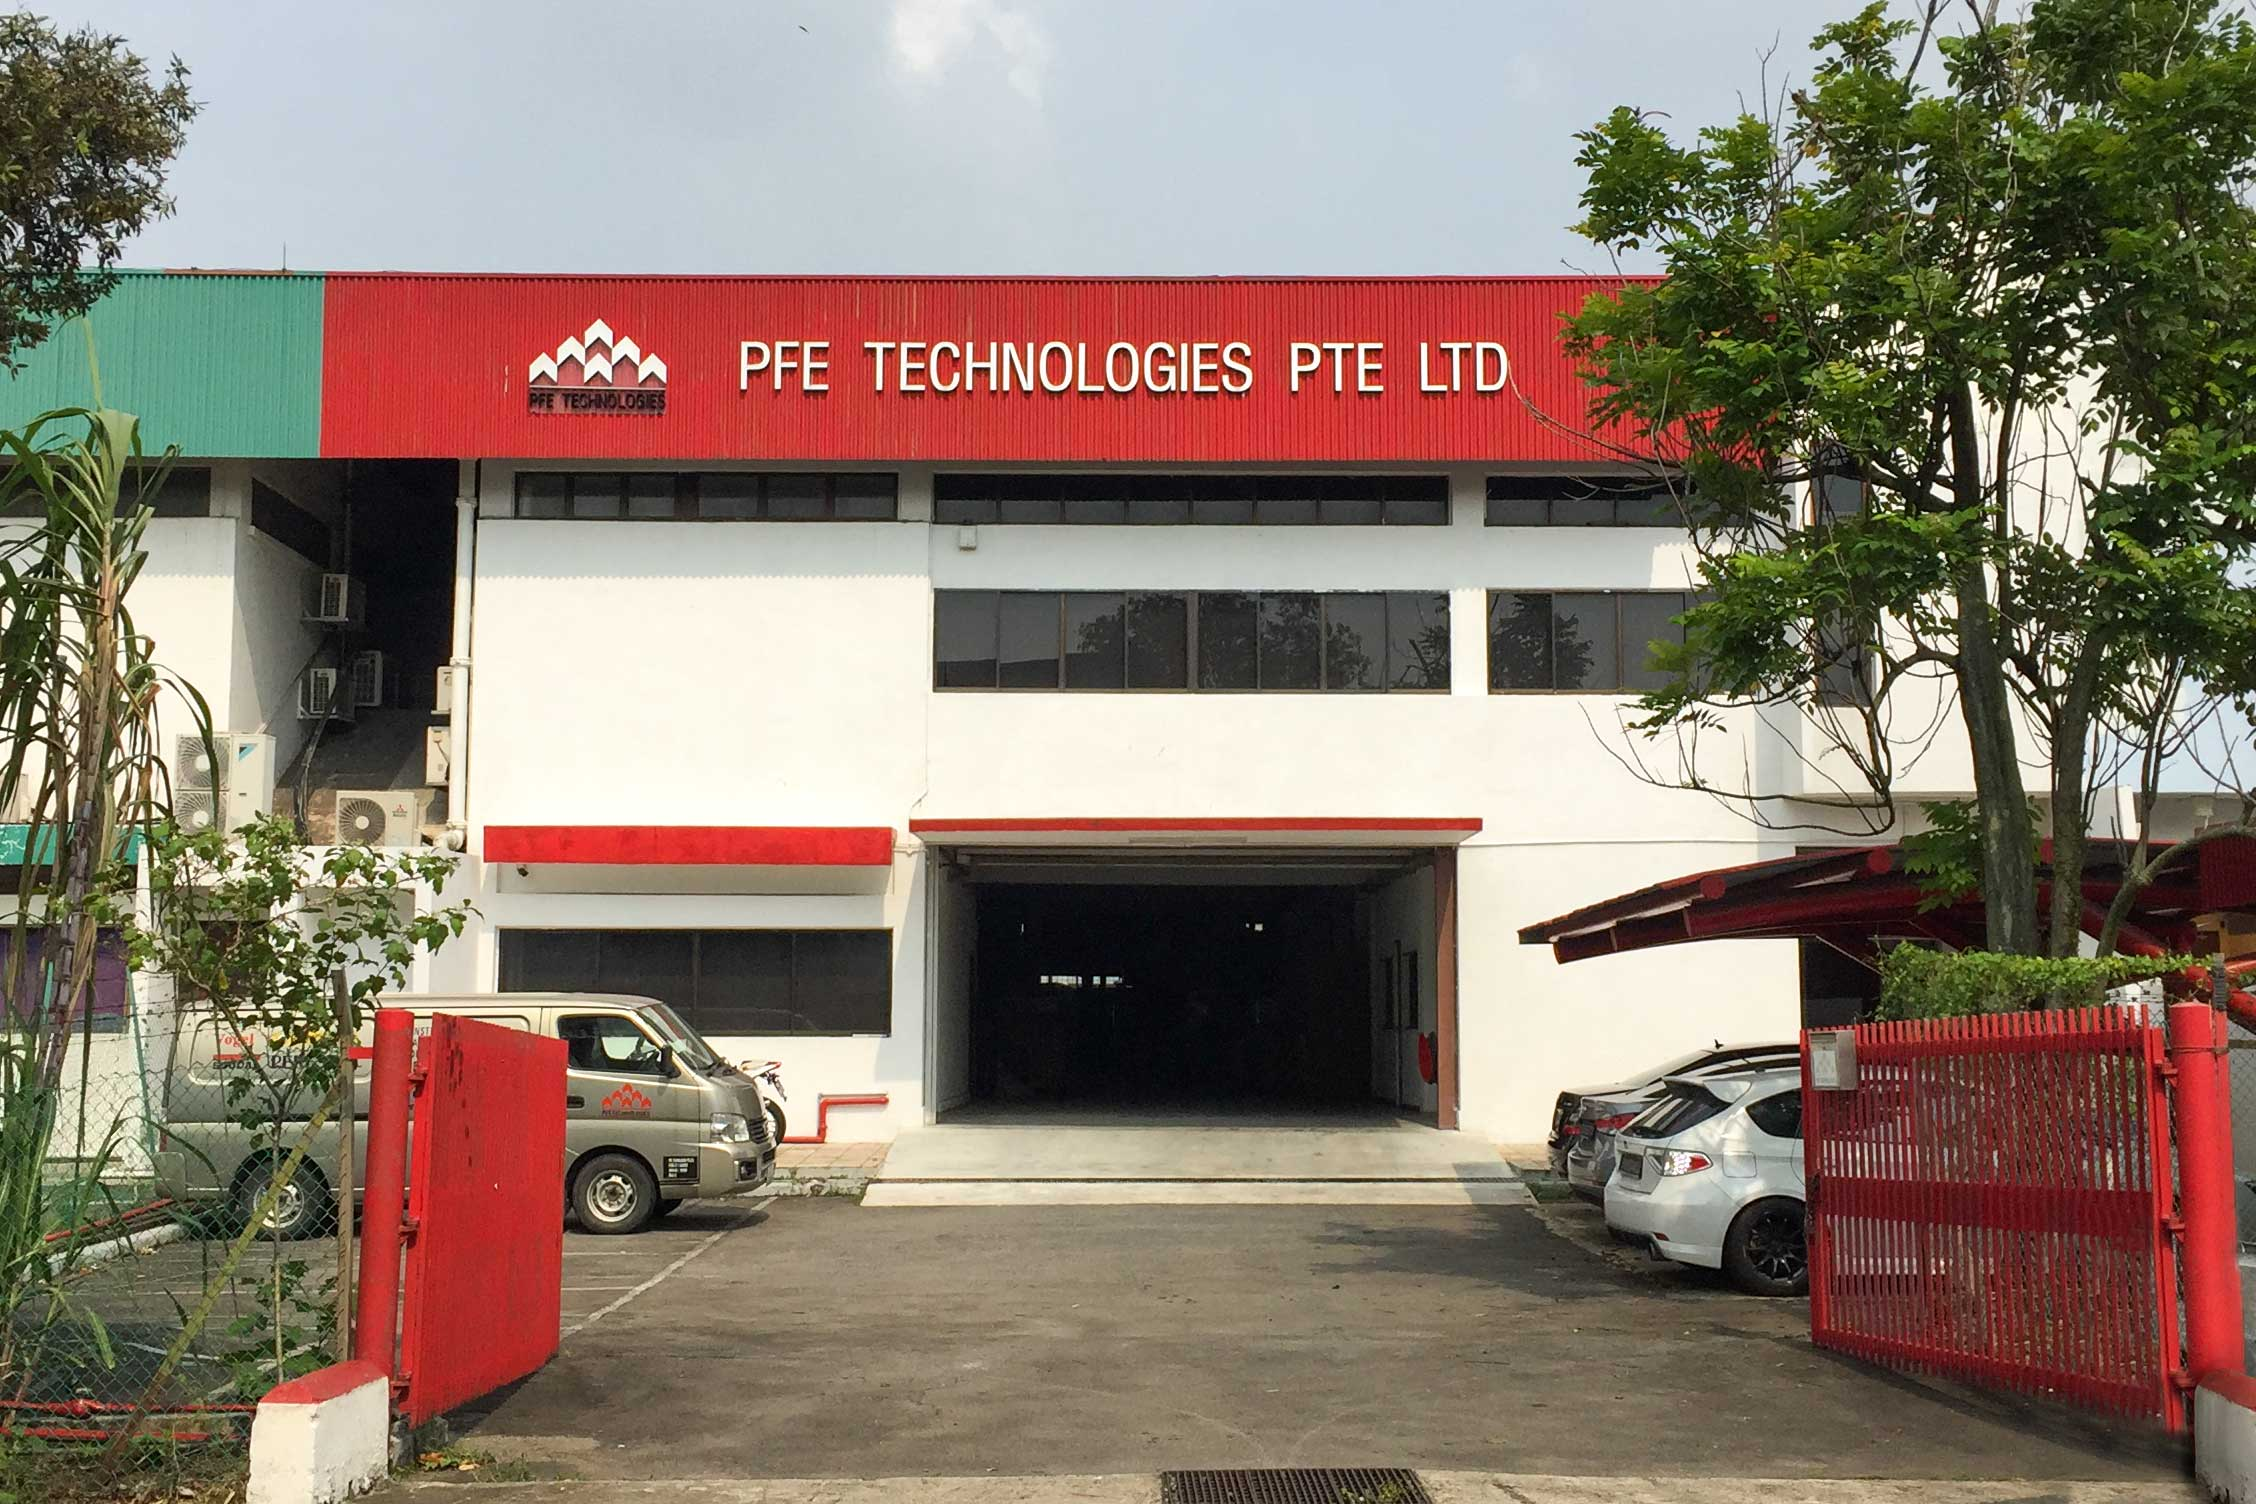 PFE Technologies Pte Ltd